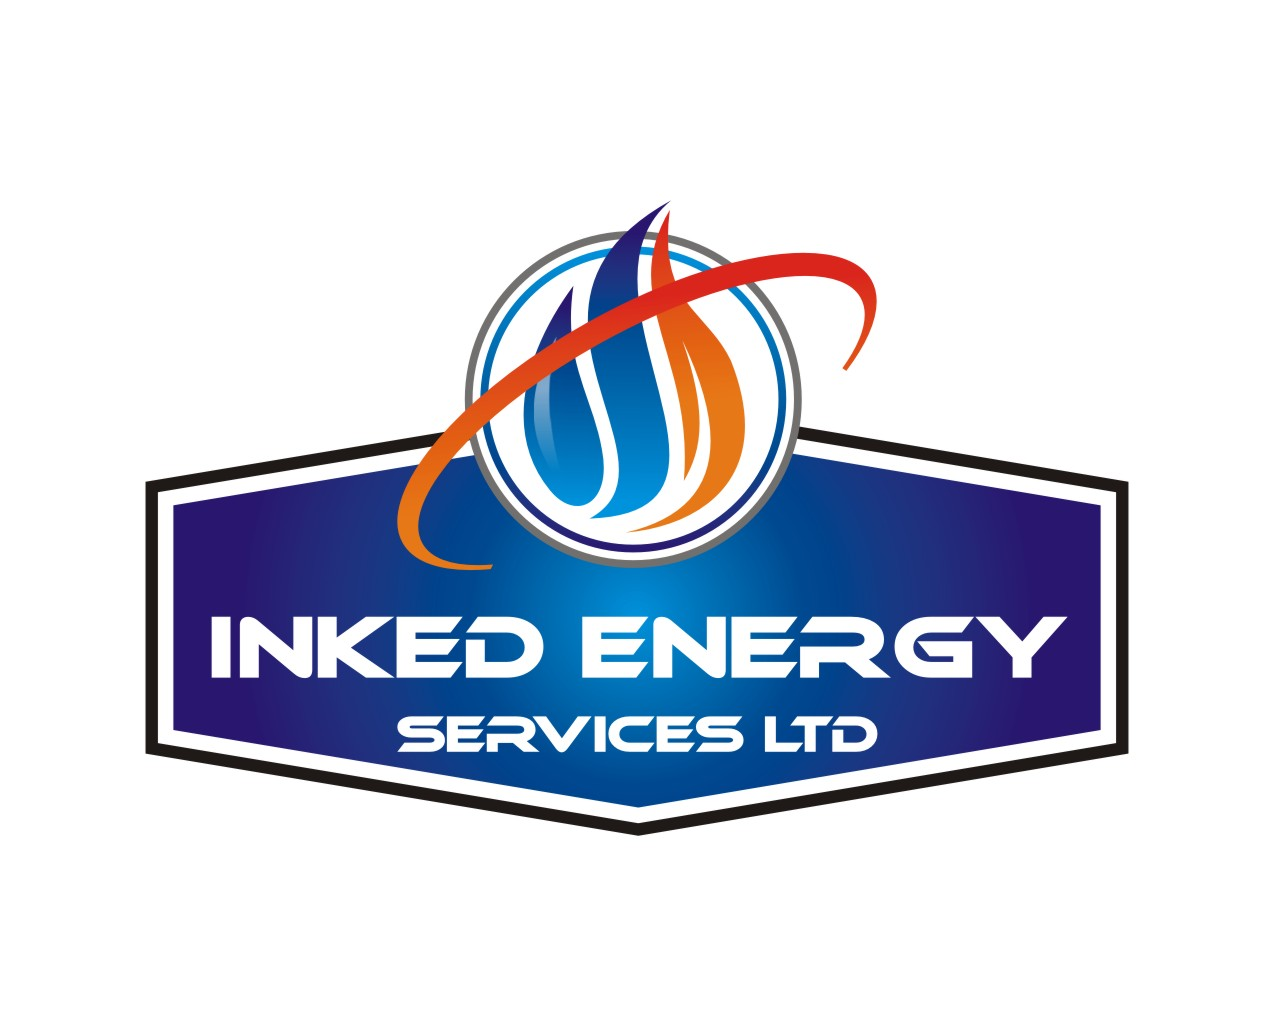 Logo Design by Spider Graphics - Entry No. 62 in the Logo Design Contest Creative Logo Design for INKED ENERGY SERVICES LTD.